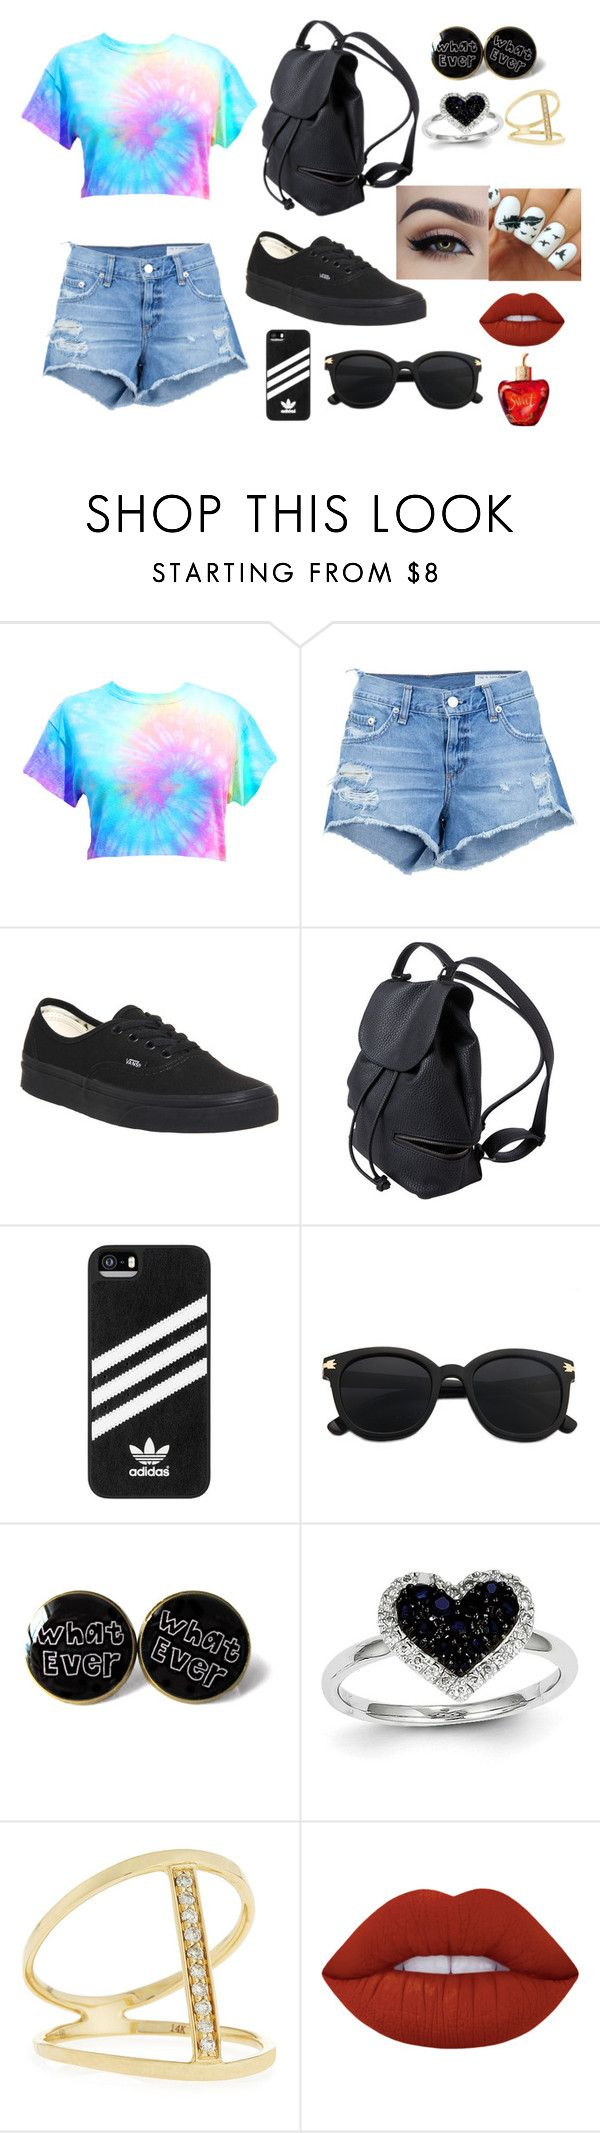 Outfit 11 by sarahcb2002 on Polyvore featuring rag & bone/JEAN, Vans, Sydney Evan, Kevin Jewelers, adidas, Lime Crime and Lolita Lempicka